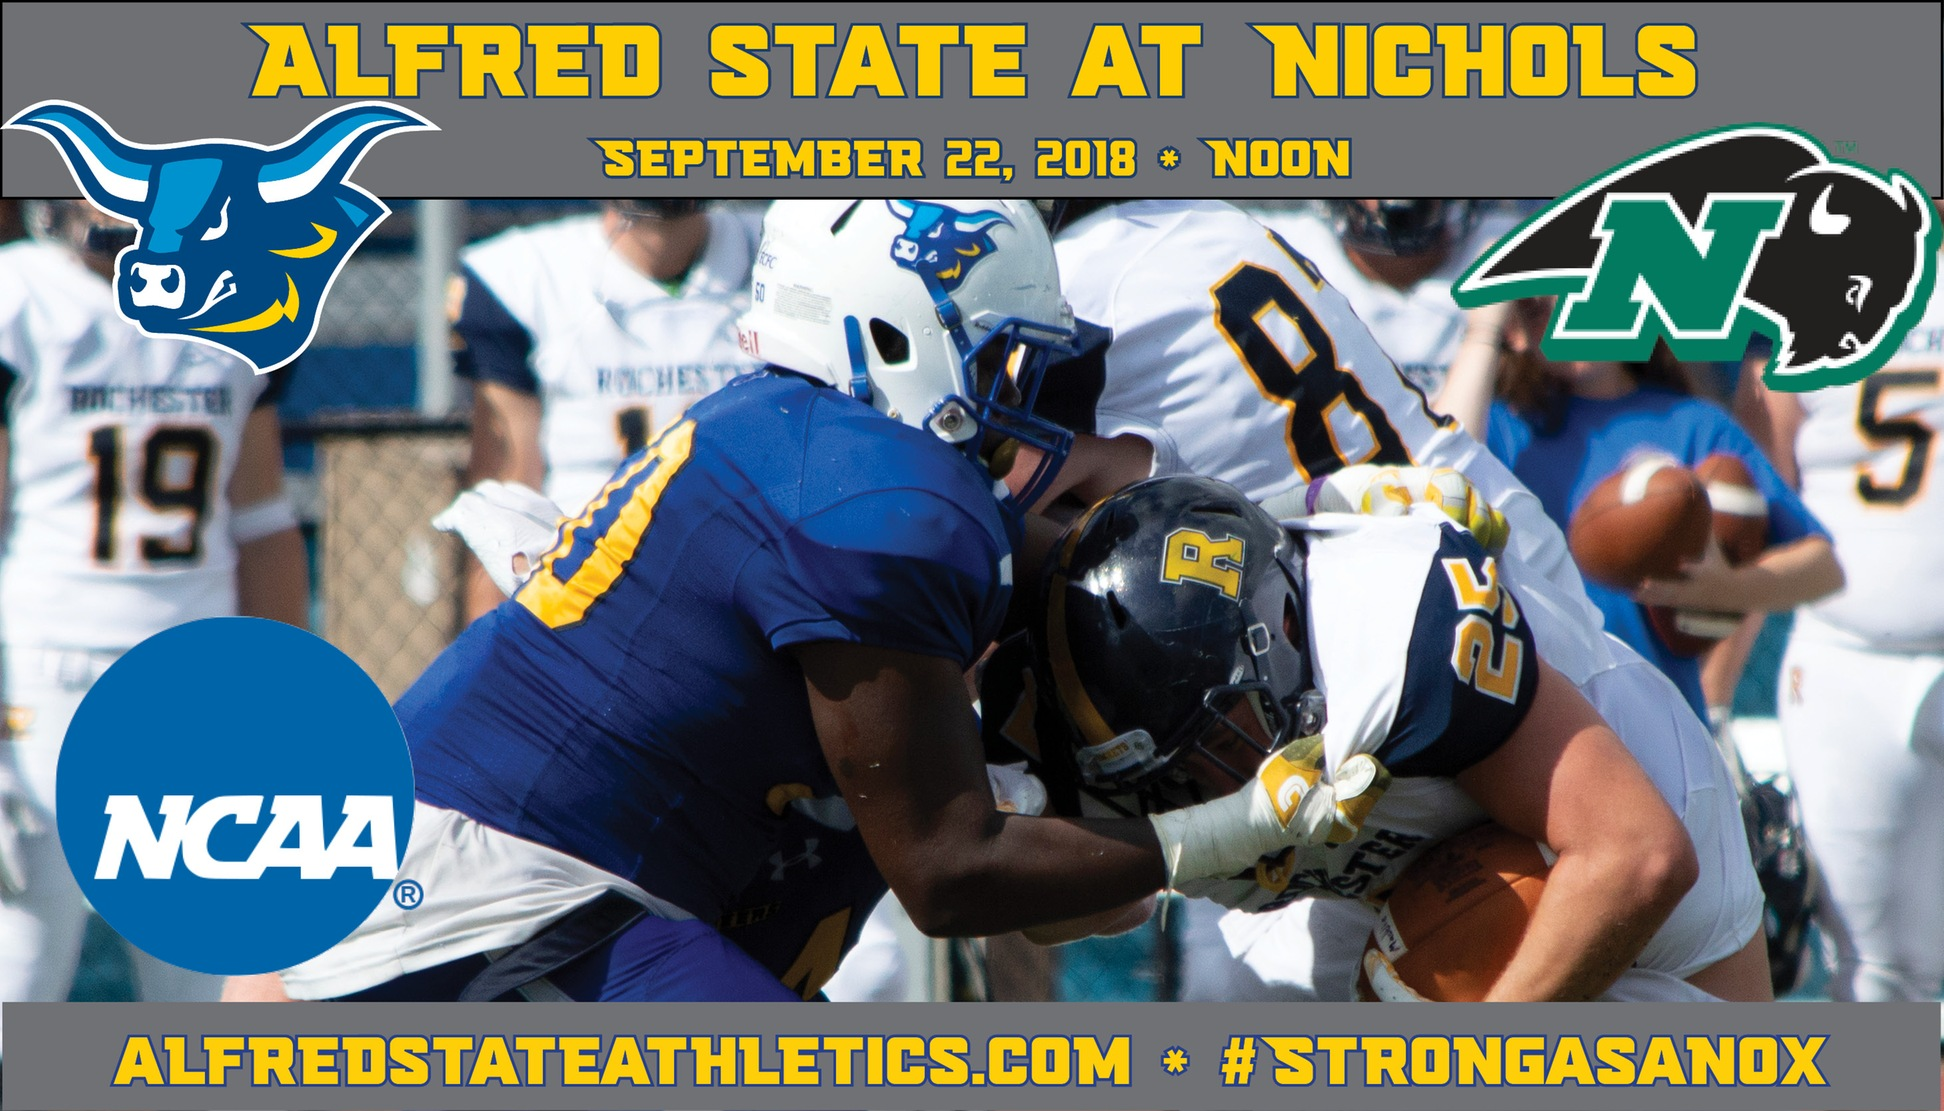 Alfred State travels to Nichols to take on the Bison in their final non-conference contest.